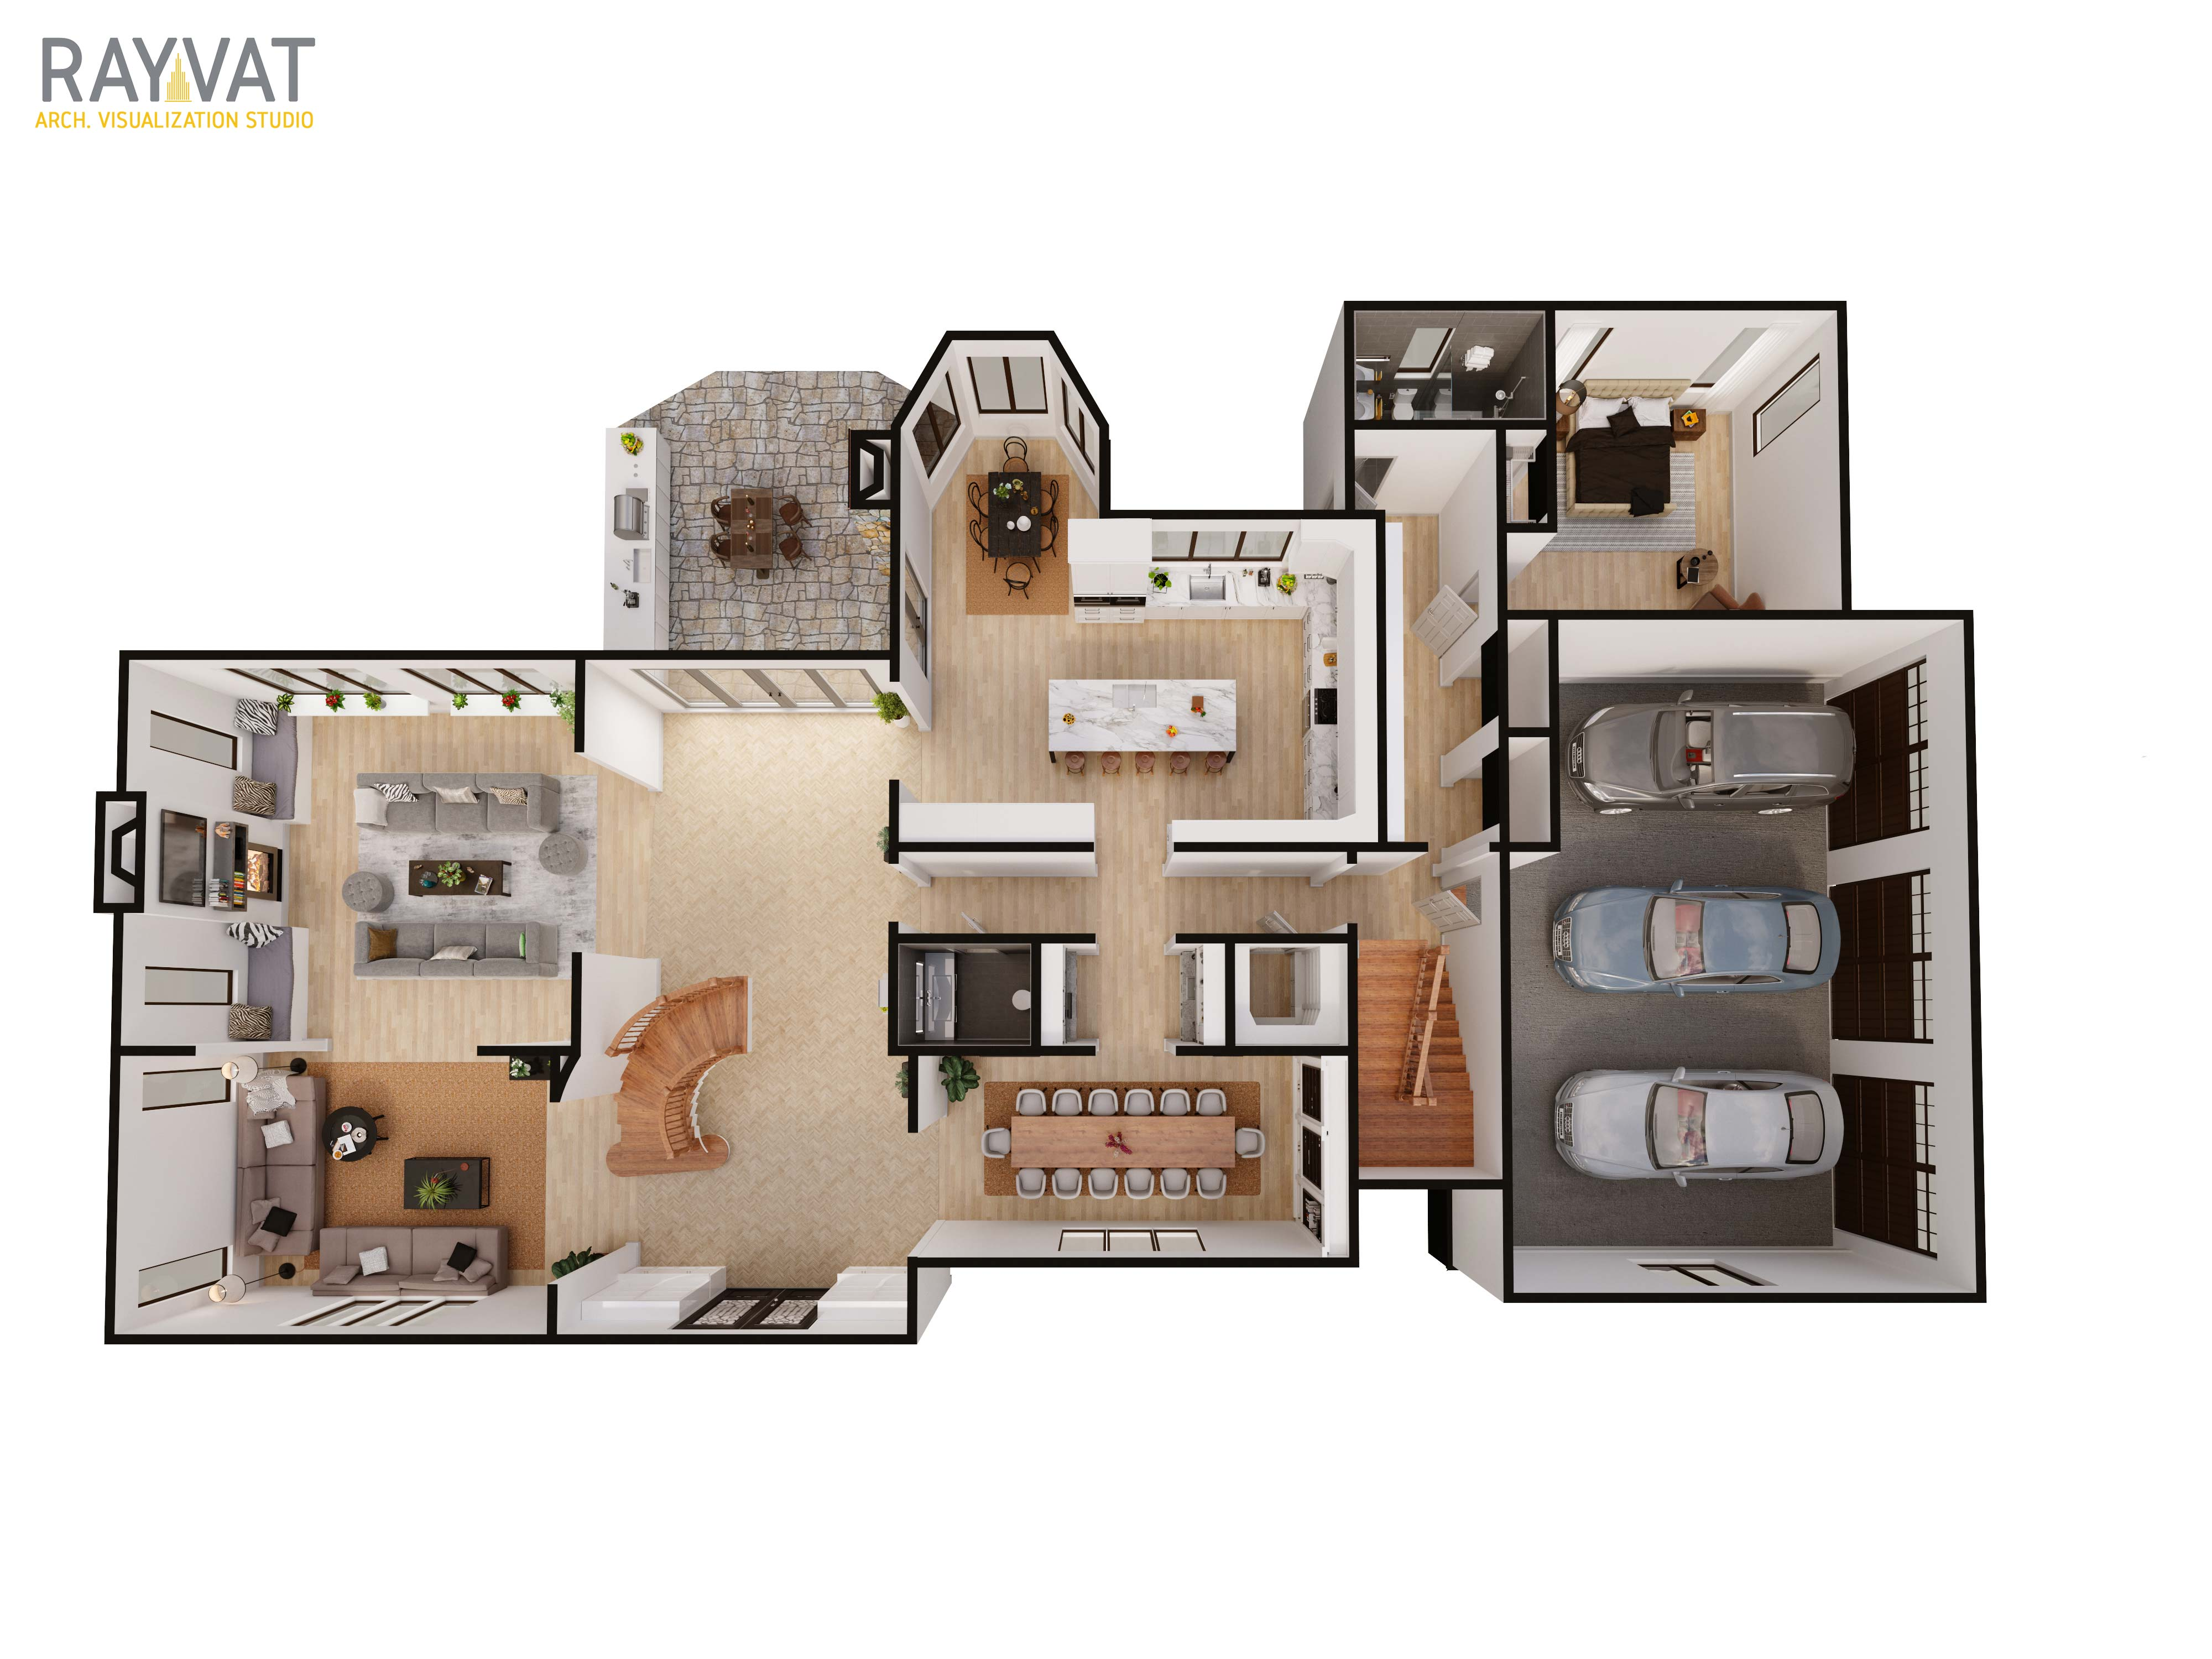 Add 2D and 3D Floor plans in the Listings